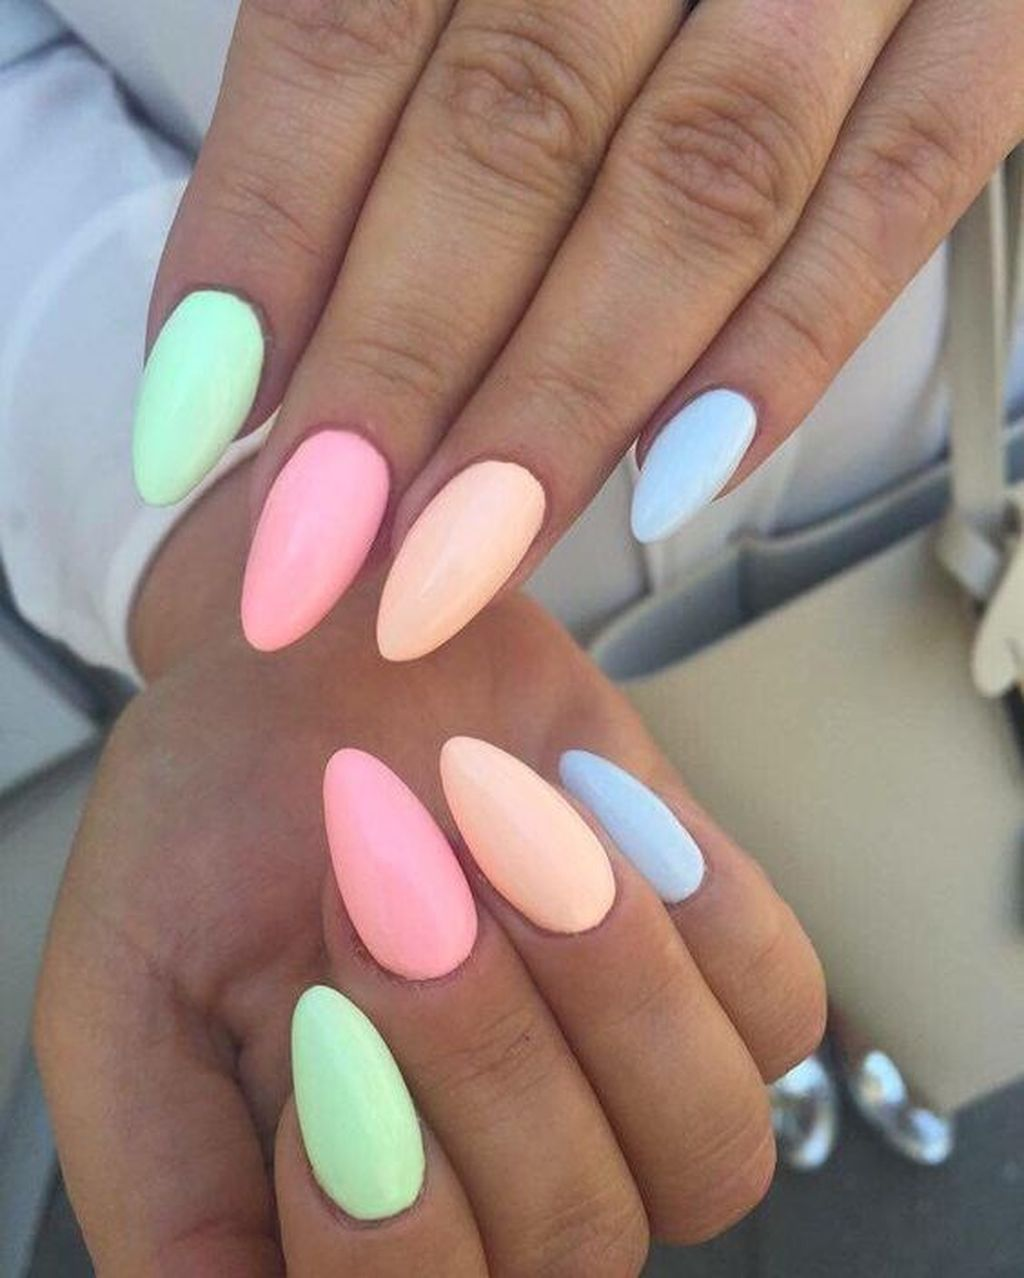 30 Gorgeous Natural Summer Nail Color Designs Ideas In 2020 Pastelove Nehty Gelove Nehty Design Nehtu